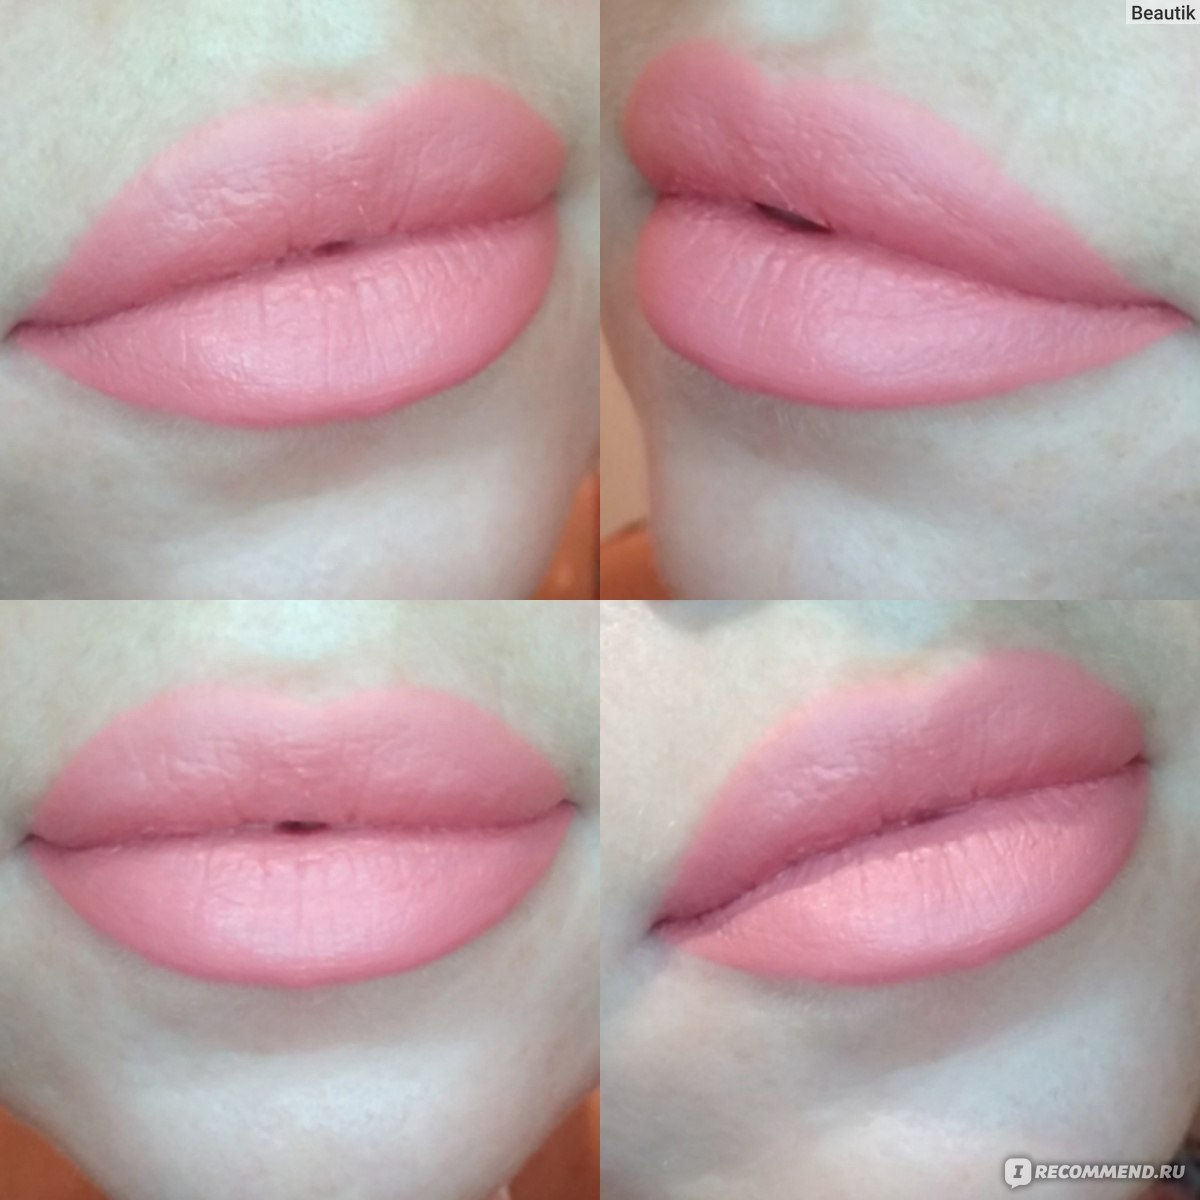 жидкая матовая помада Flormar Pretty Matte Liquid Lipstick Pretty